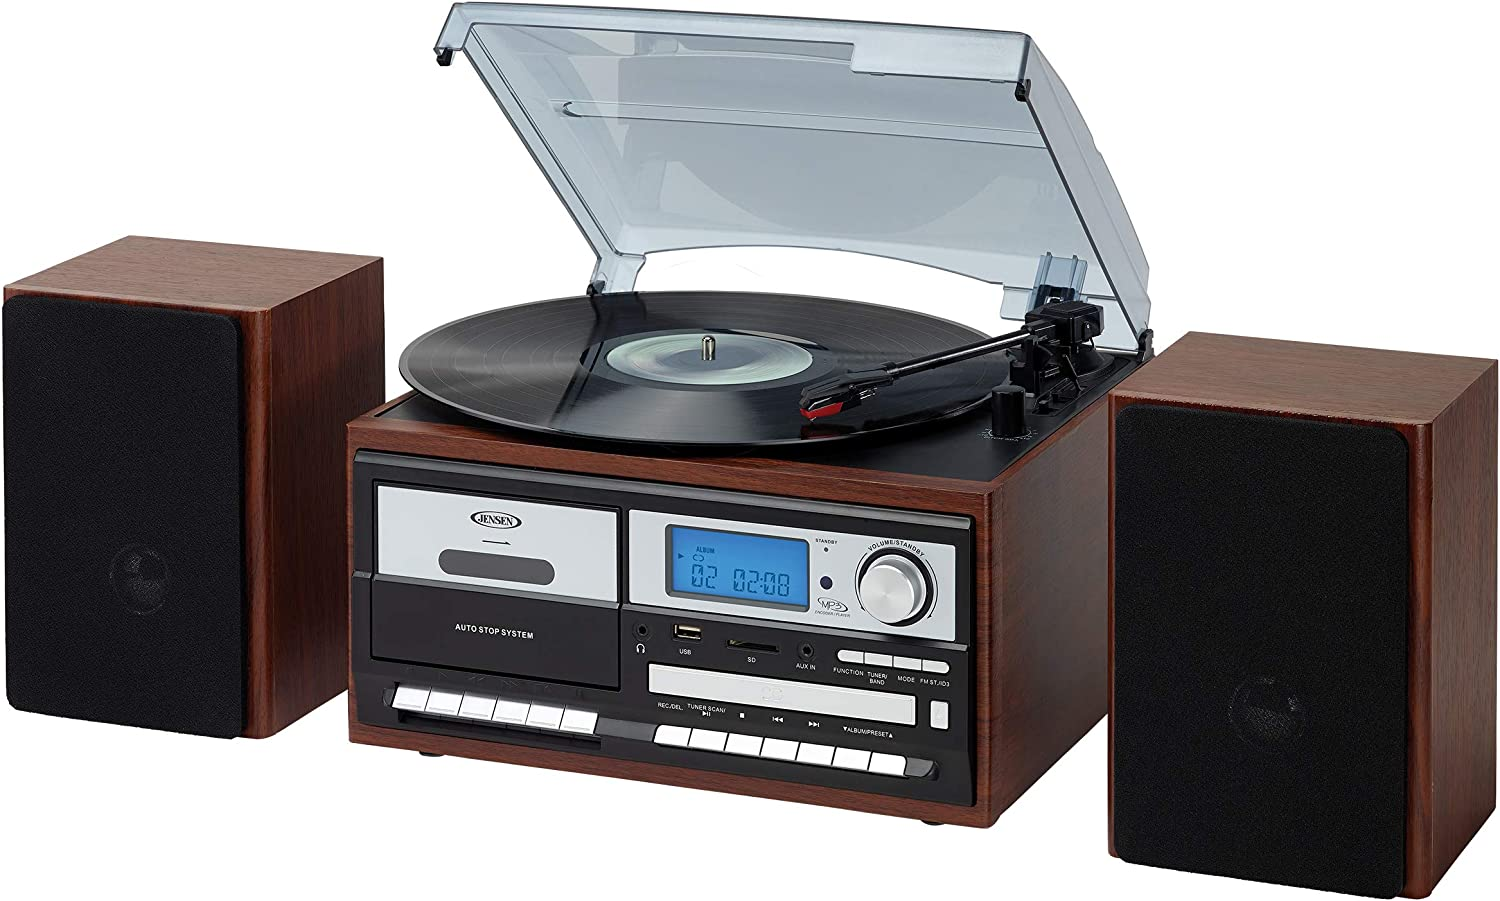 Jensen JTA-575WG All-in-One Modern Home Record Player Stereo 3-Speed Turntable Music Multimedia System + CD/MP3 USB/SD Encoding AM/FM Radio, Cassette Player/Recorder + Remote Walnut Wooden Speakers